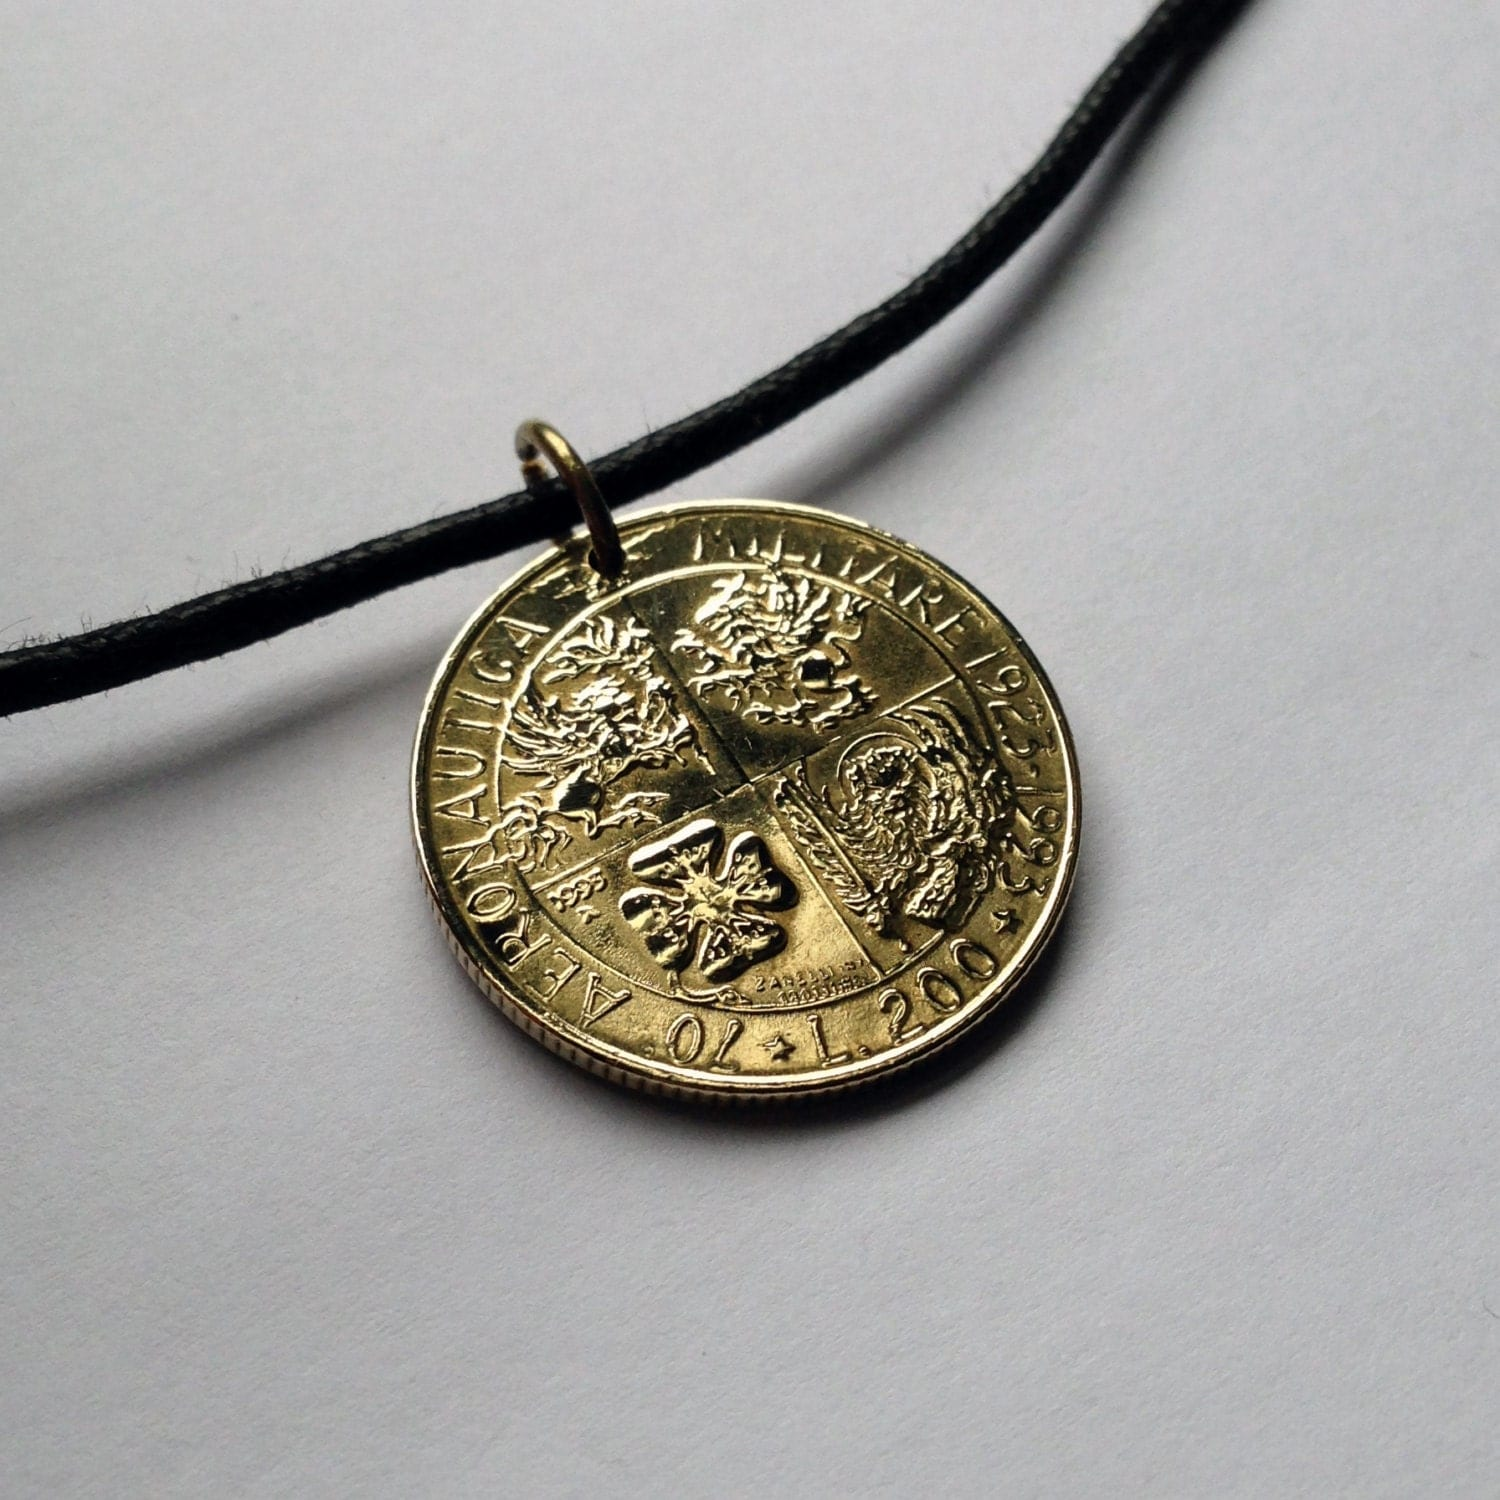 1993 italy 200 lire coin pendant charm necklace jewelry